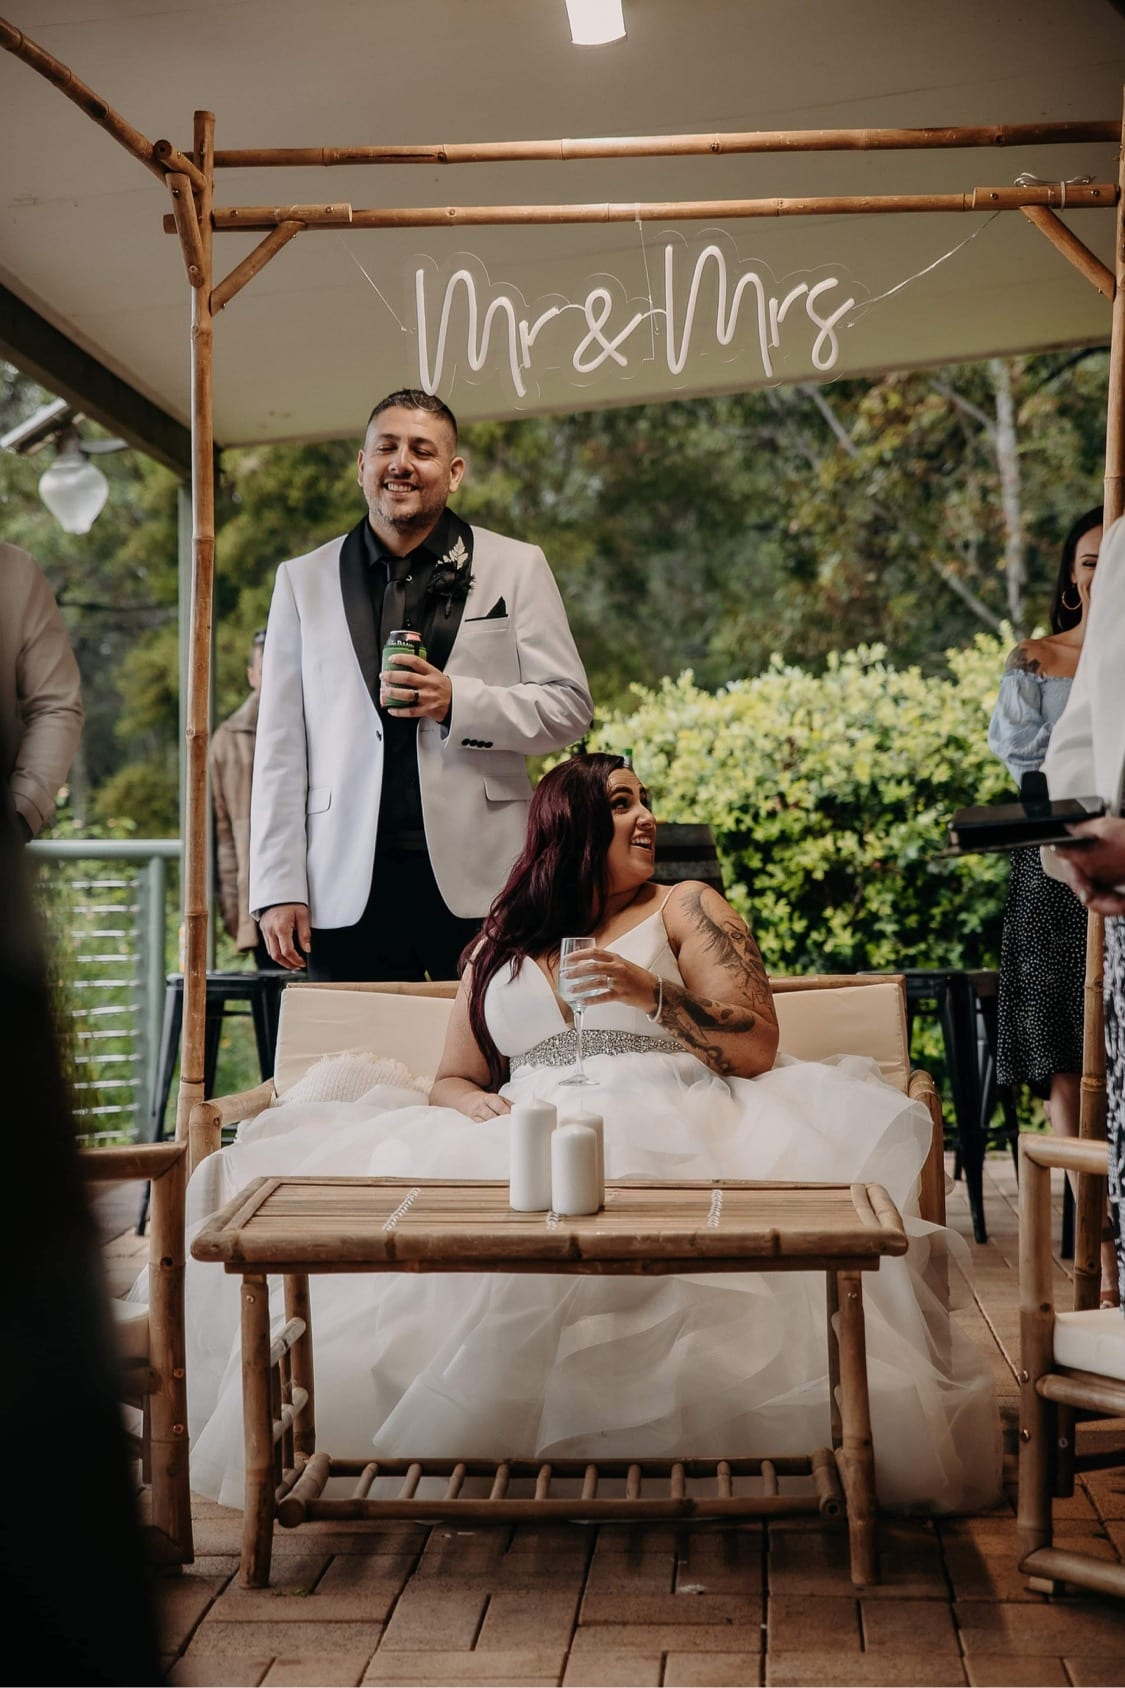 Wedfest Australia is all about making your special day perfect!